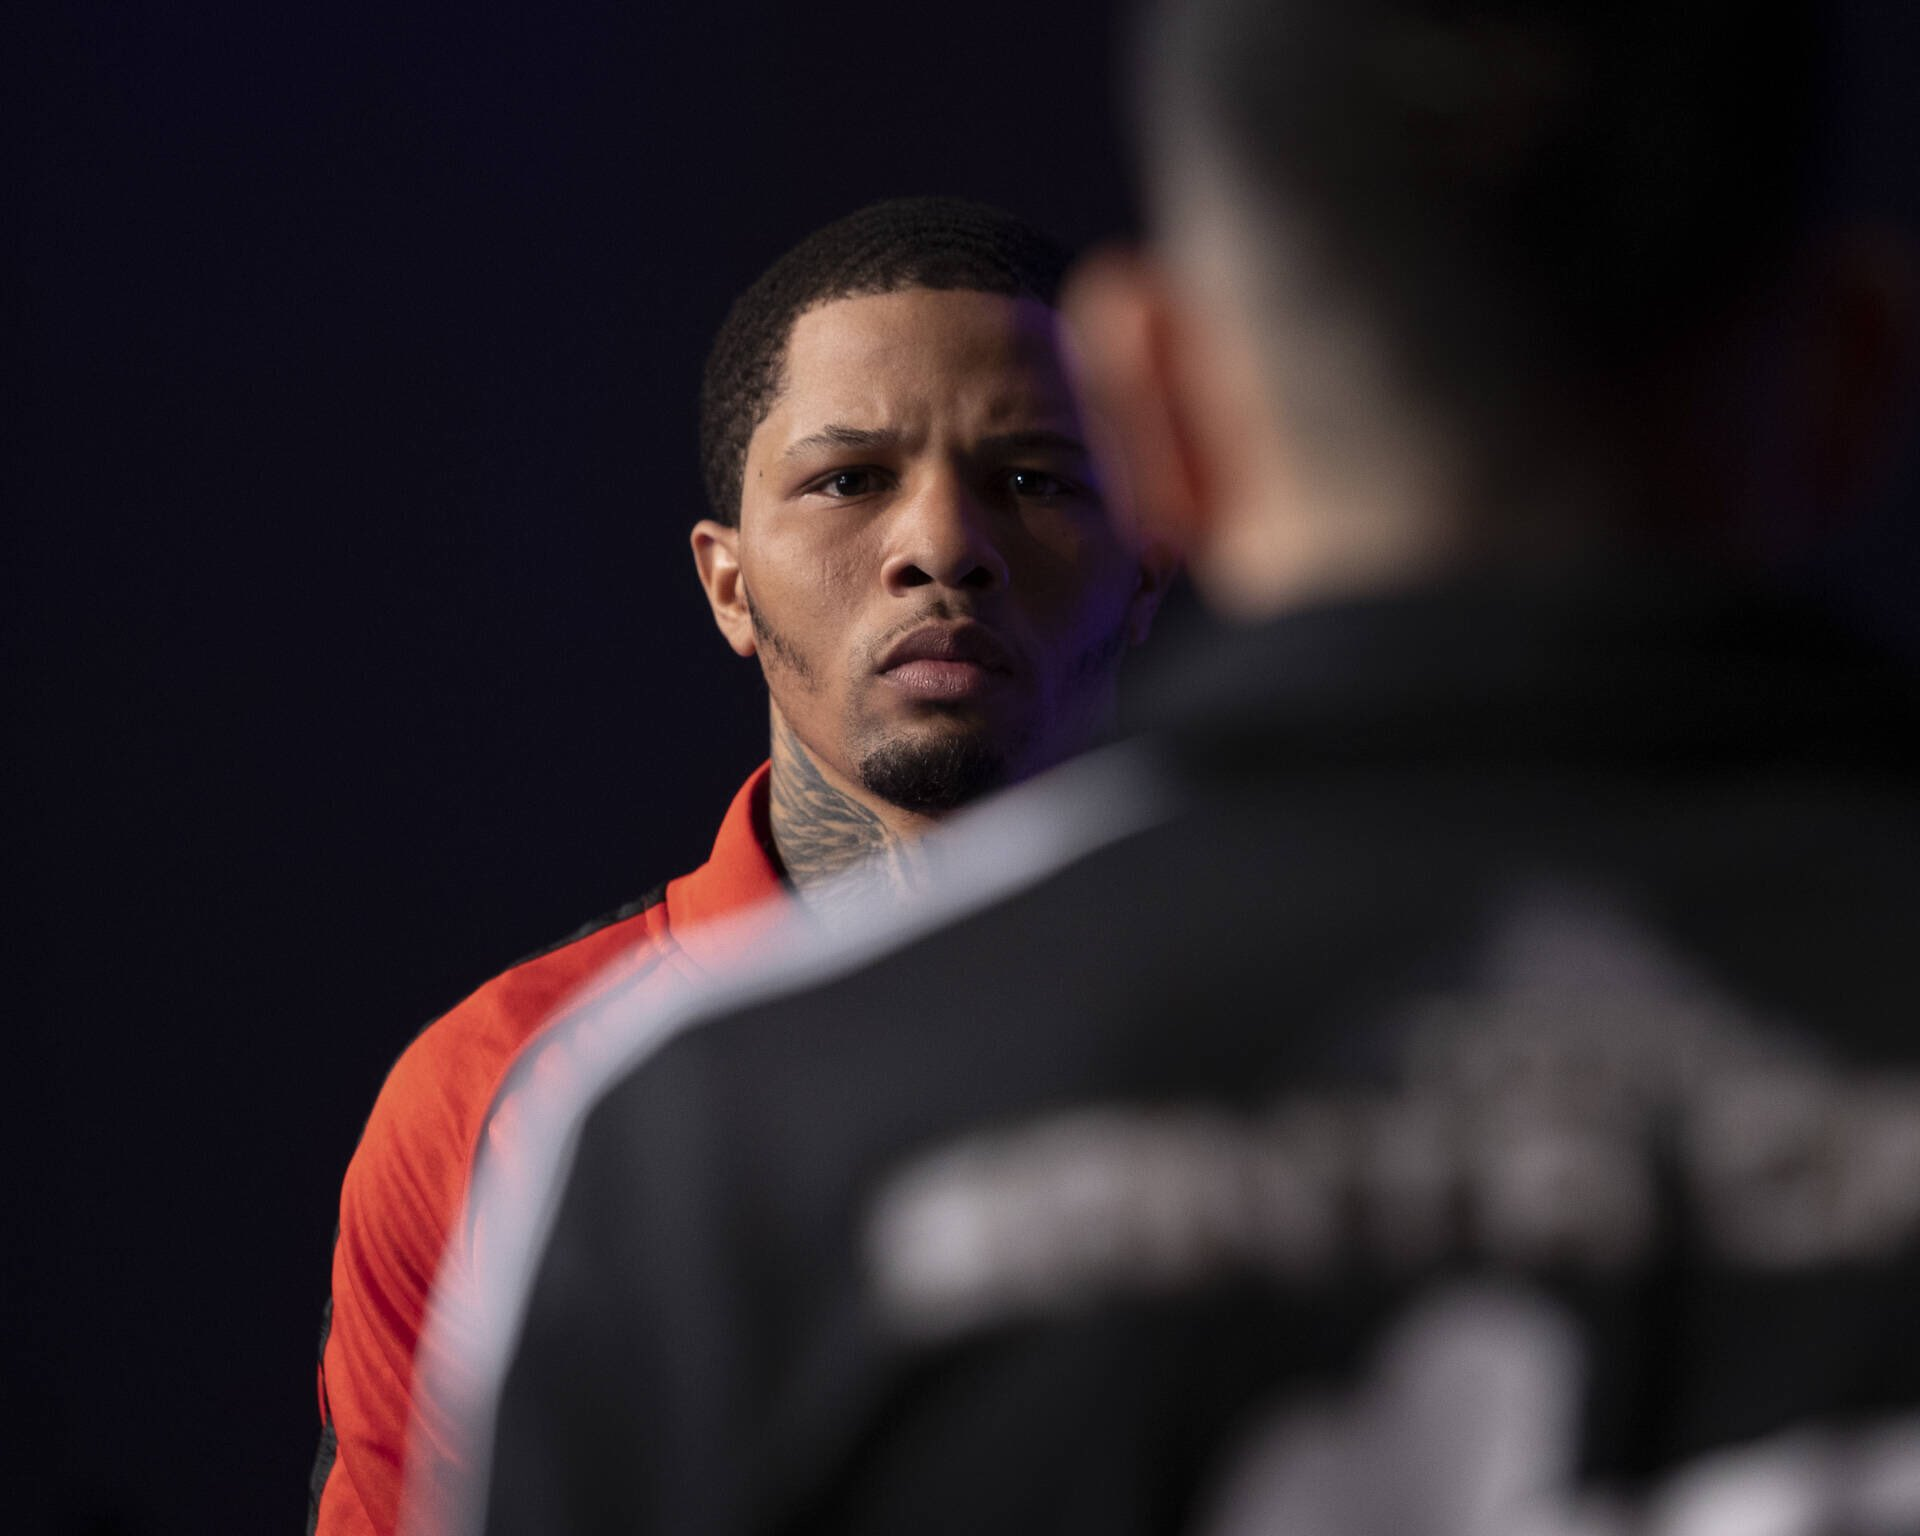 """tank - Gervonta Davis Eager To Silence Critics: """"I Just Want To Redeem Myself, Show Them That I'm Number One In The Sport"""""""